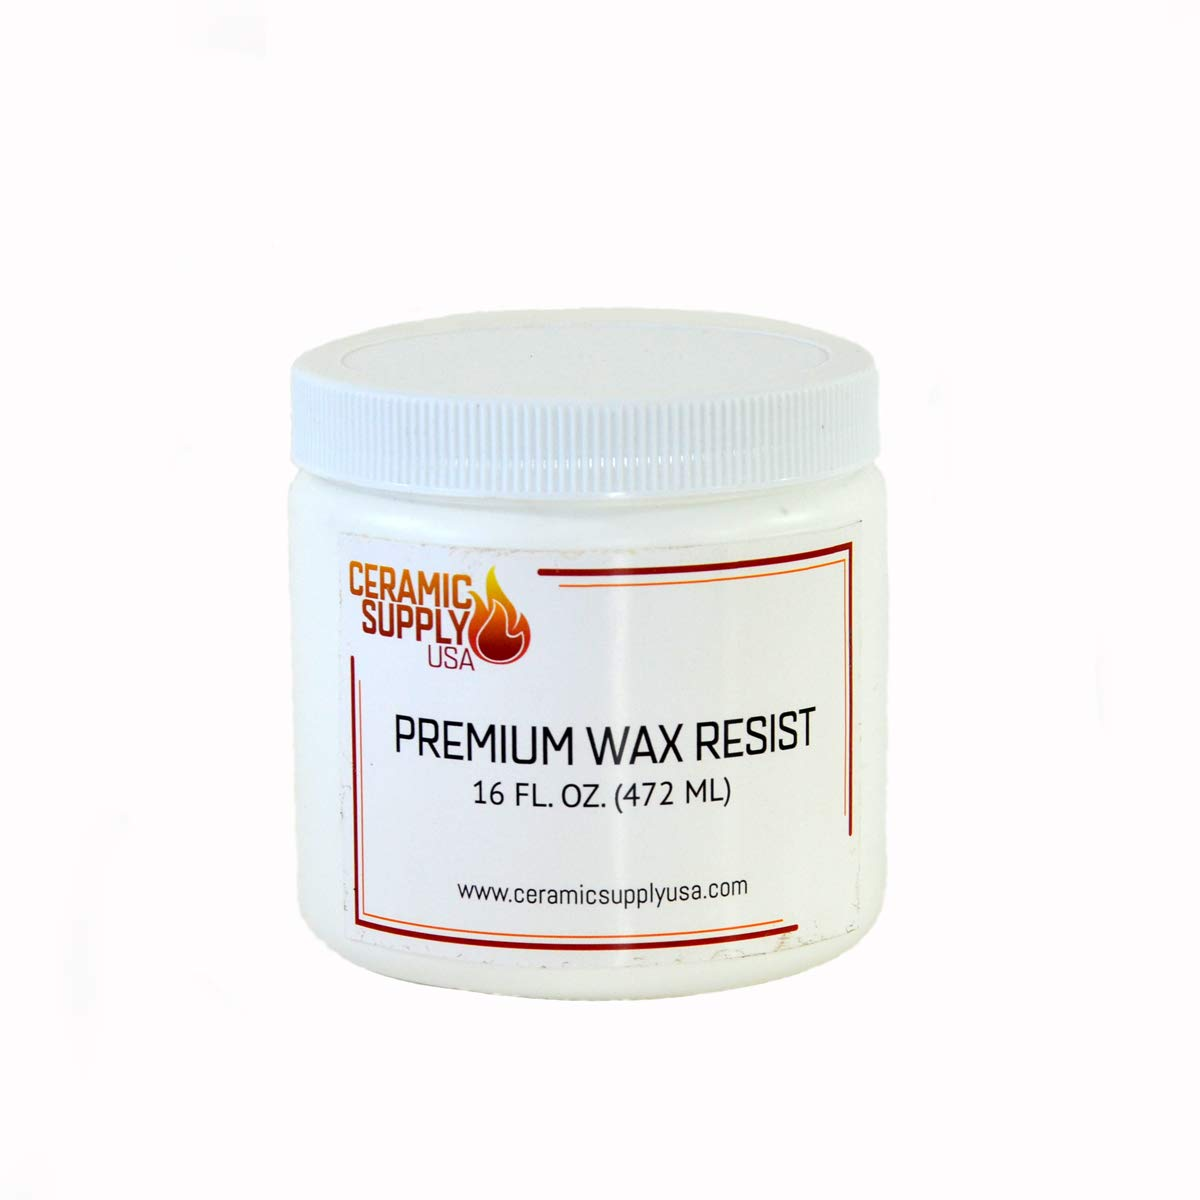 Ceramic Supply USA - Premium Wax Resist for Pottery & Ceramics - Pint - Highly Repellant Brushable Wax for Glazing- Non Toxic - Fast Drying - Non Tacky Dried Surface - Won't Peel or Bubble